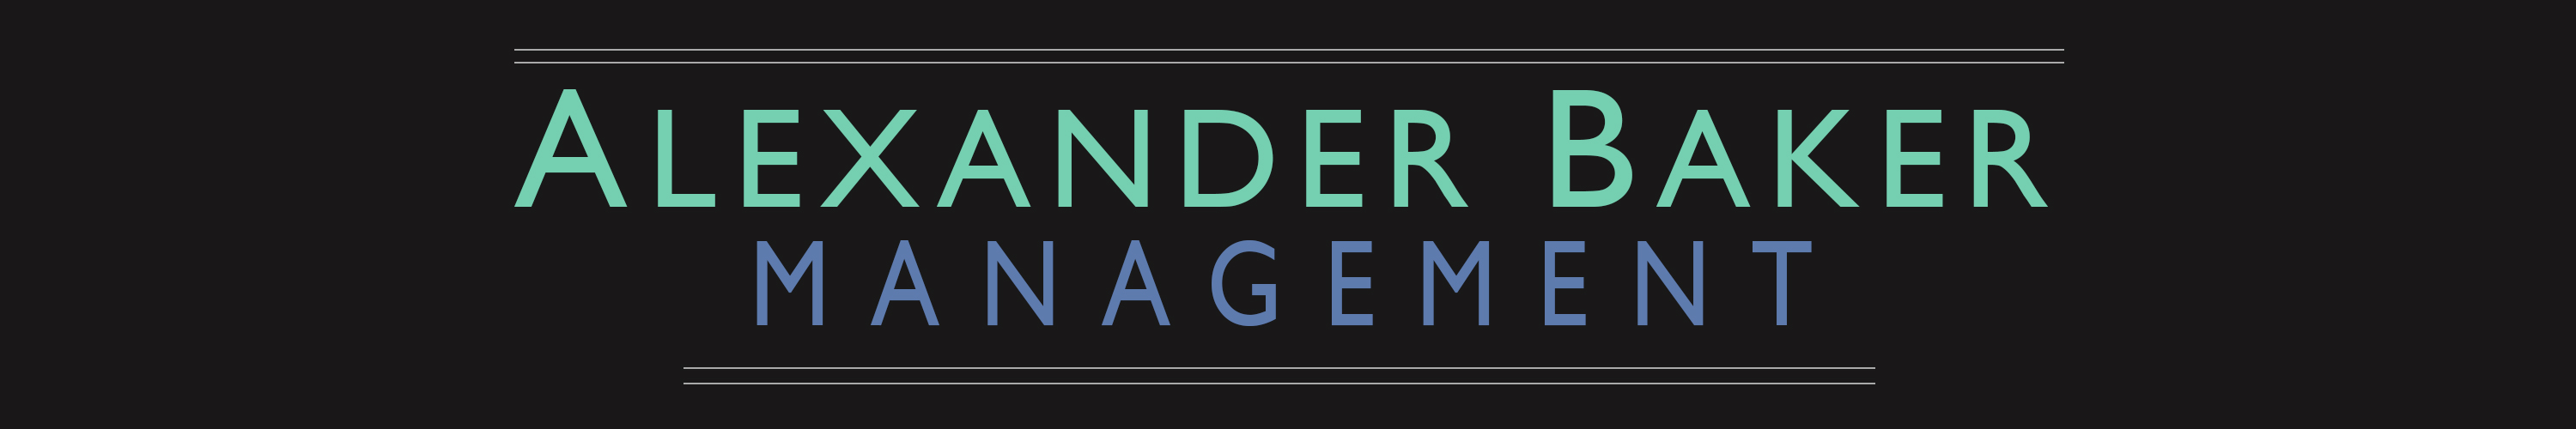 Alexander Baker Management